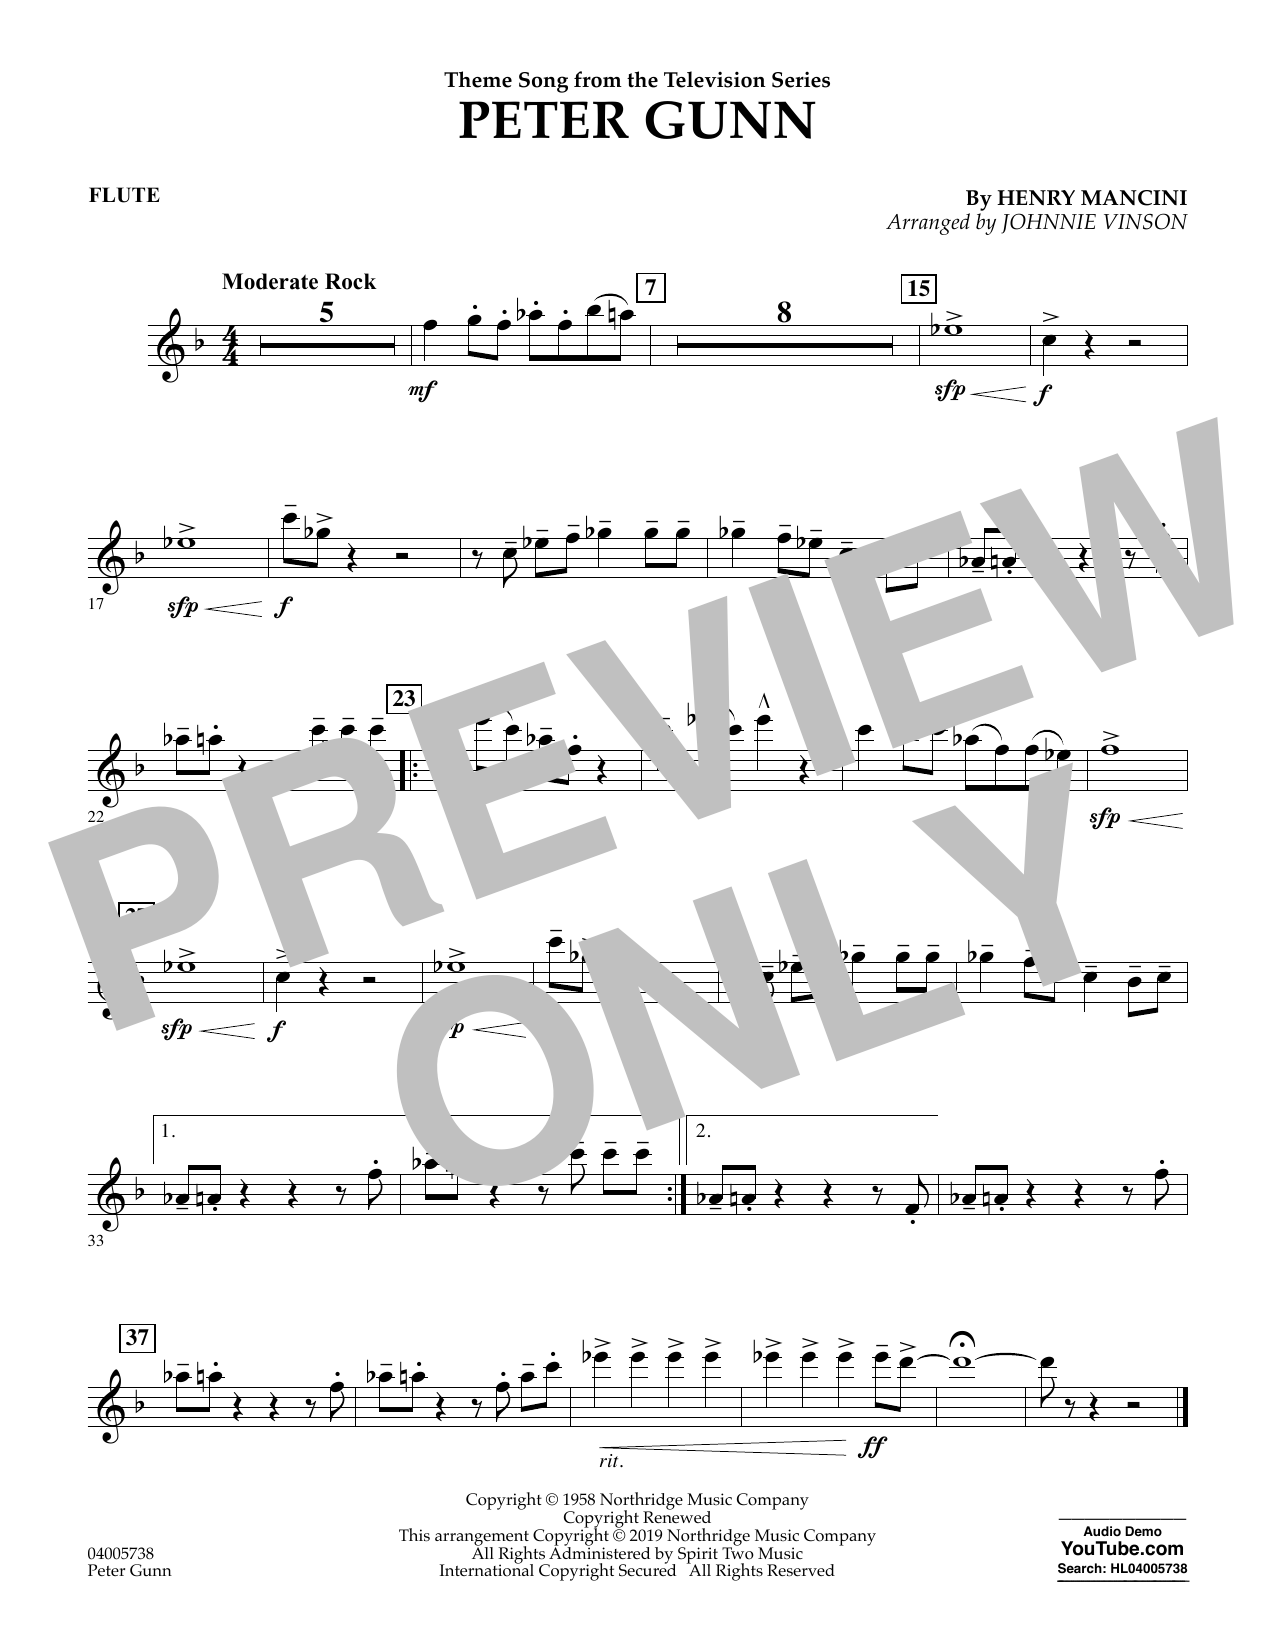 Henry Mancini Peter Gunn (arr. Johnnie Vinson) - Flute sheet music preview music notes and score for Concert Band including 1 page(s)